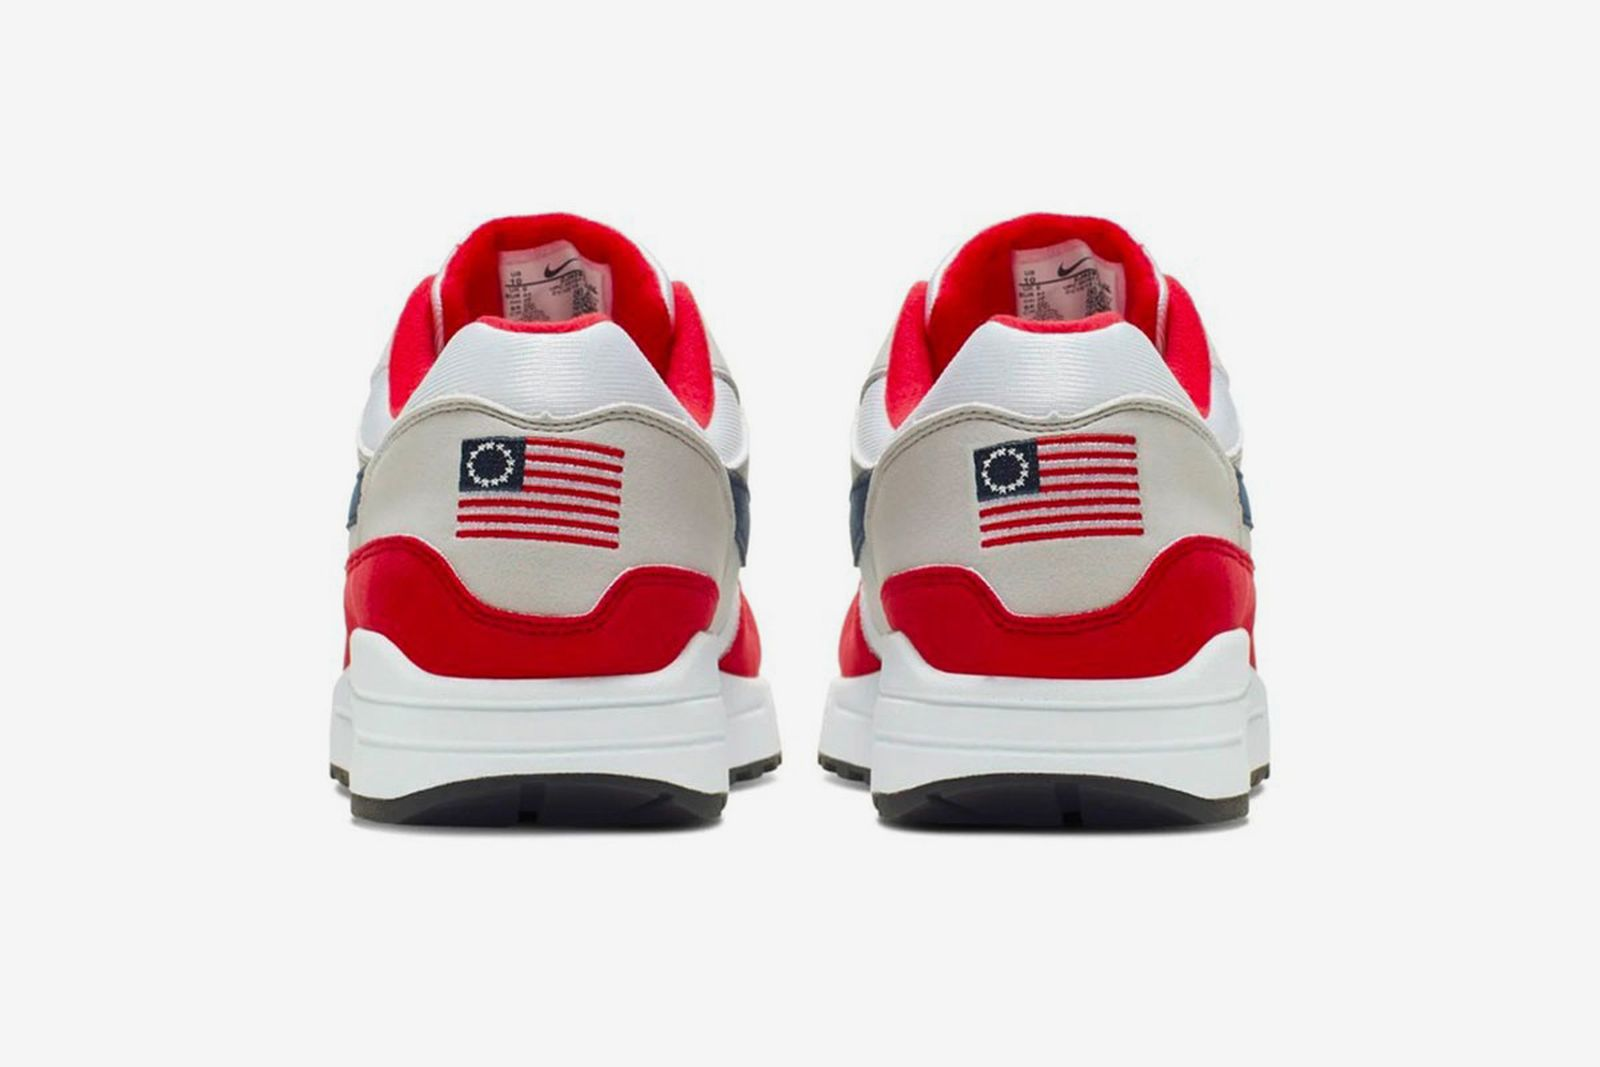 nike air max 1 usa 2019 release date price StockX